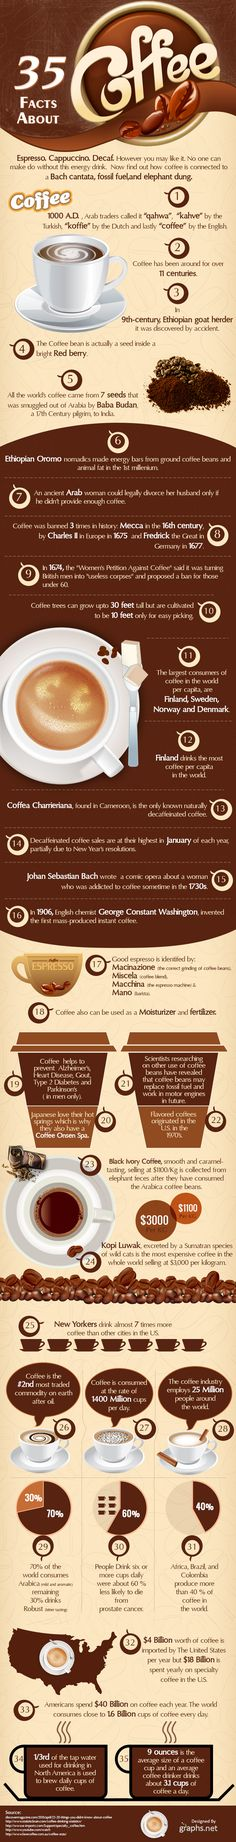 35 Facts About Coffee and a delicious recipe for Morning Joe in the Raw!!